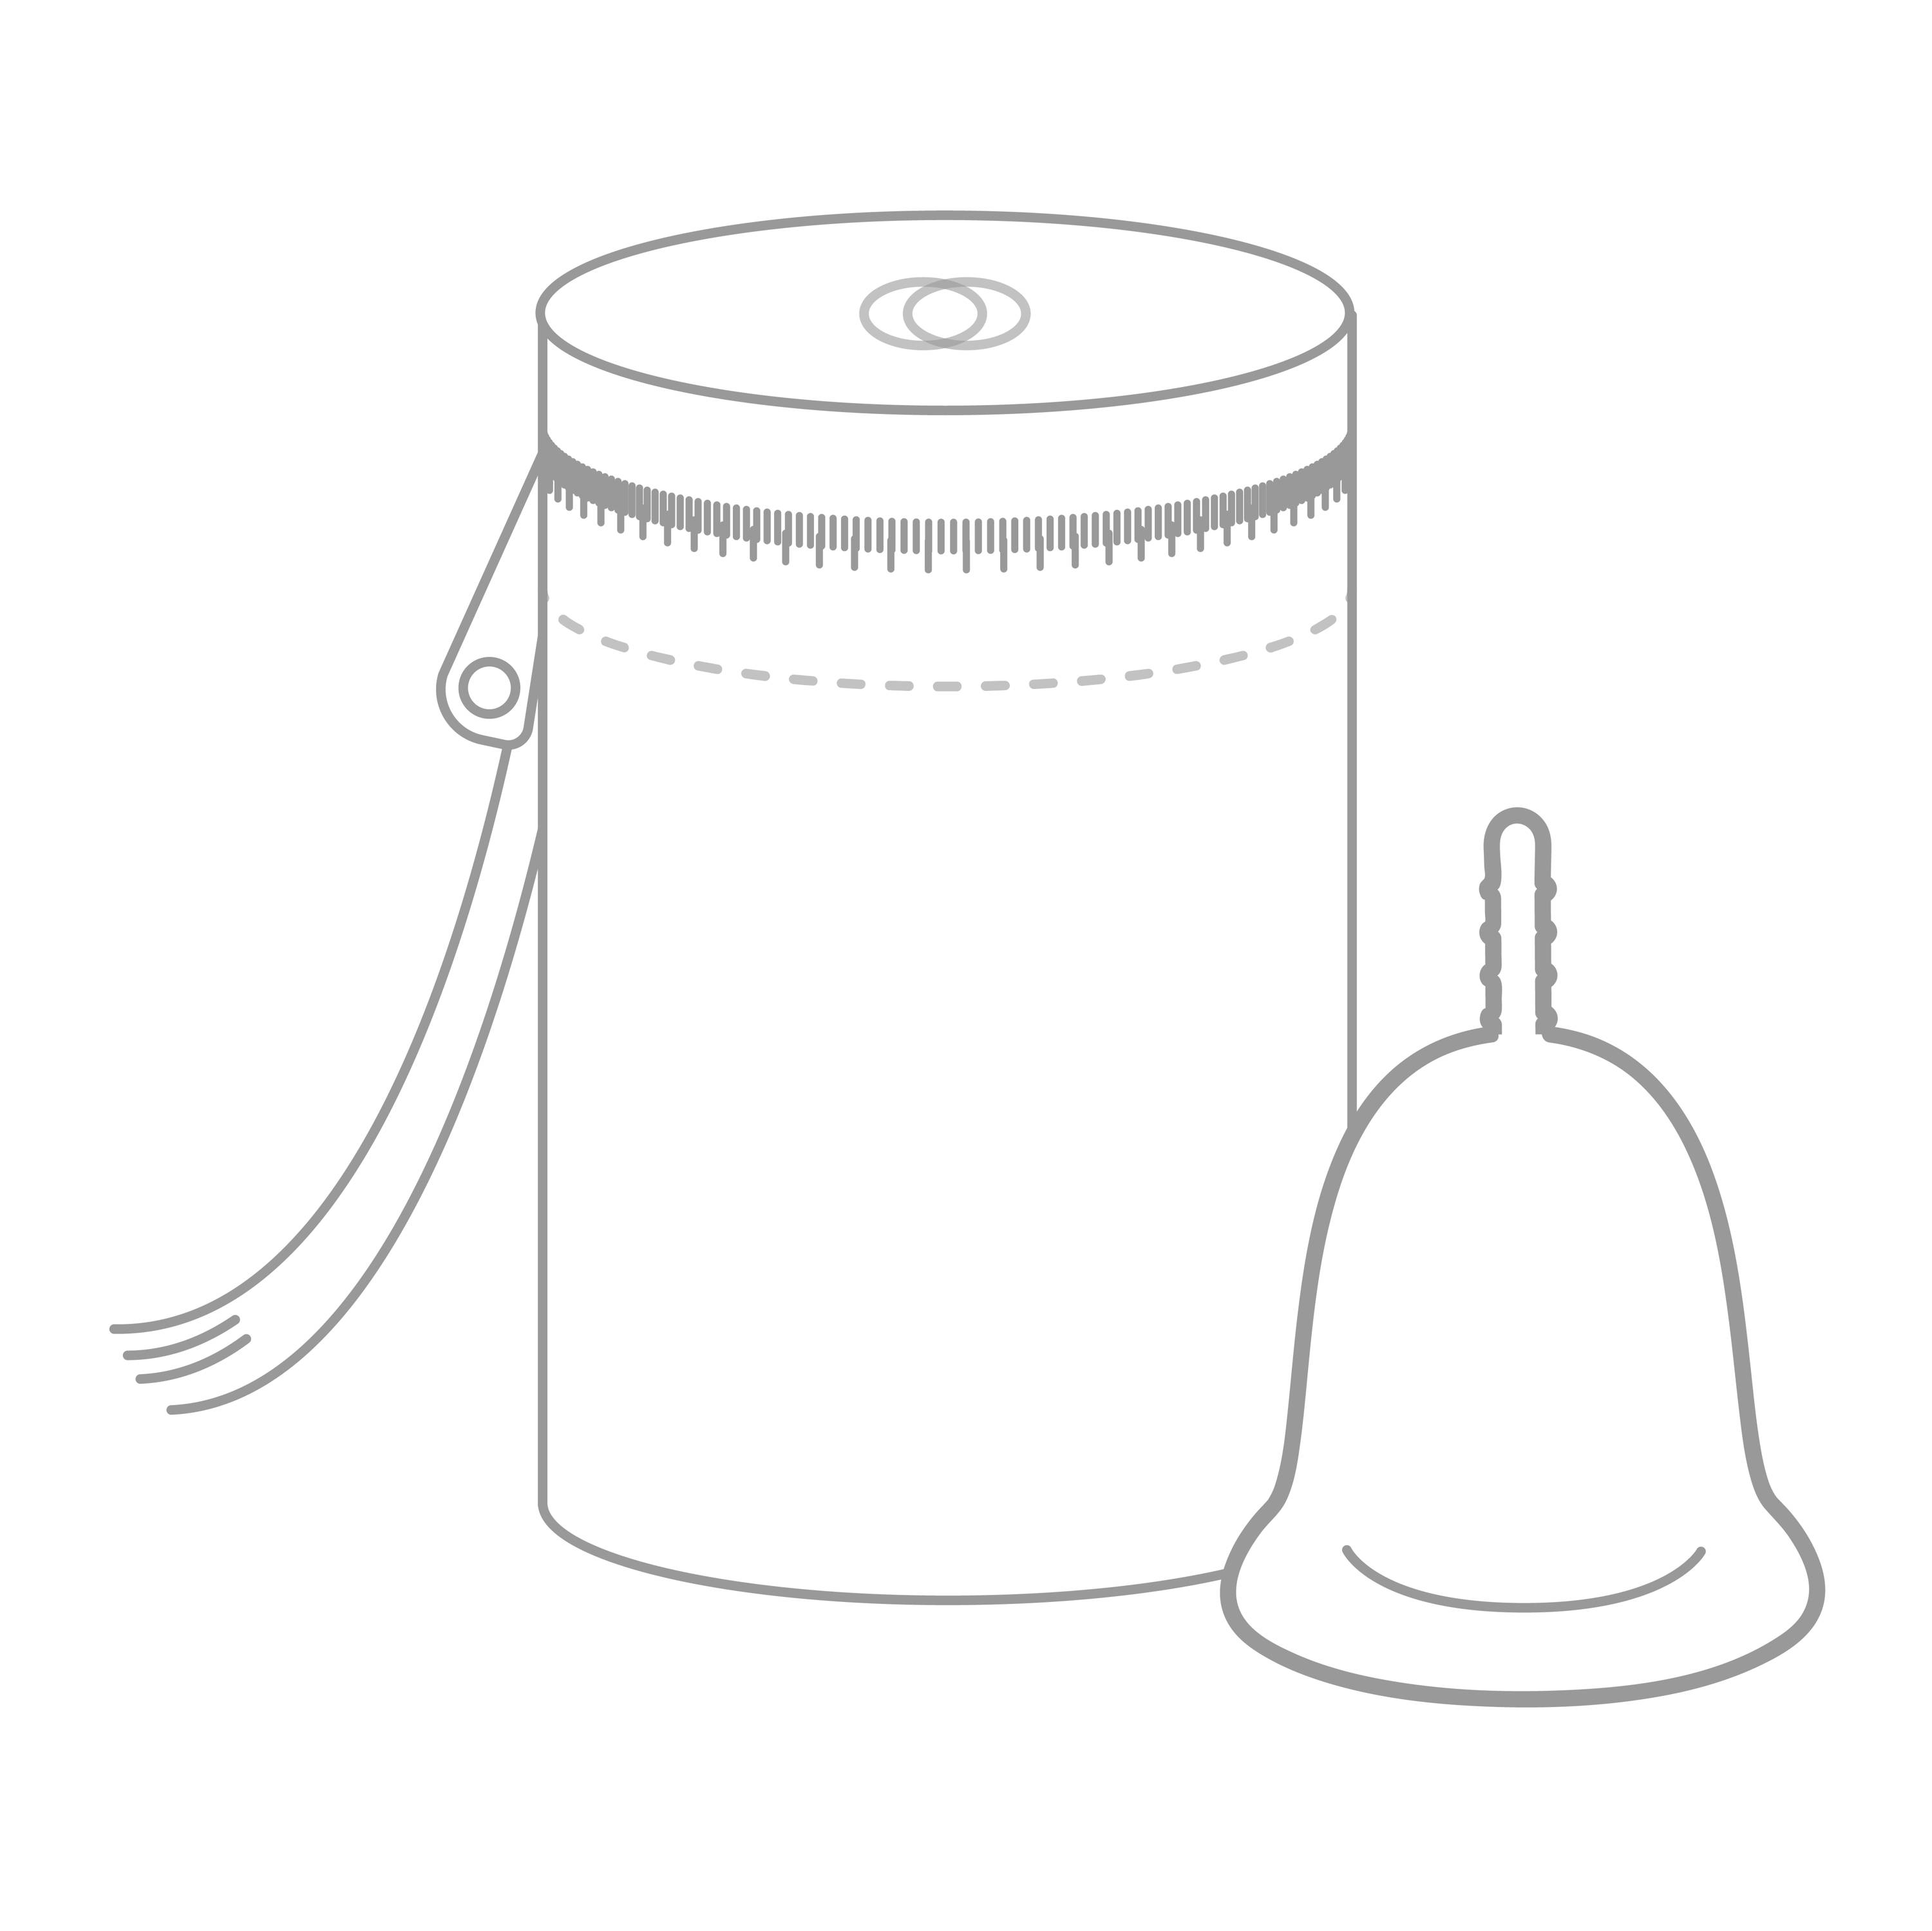 An animated Cora menstrual cup resting next to a period cup carrying and storage case.